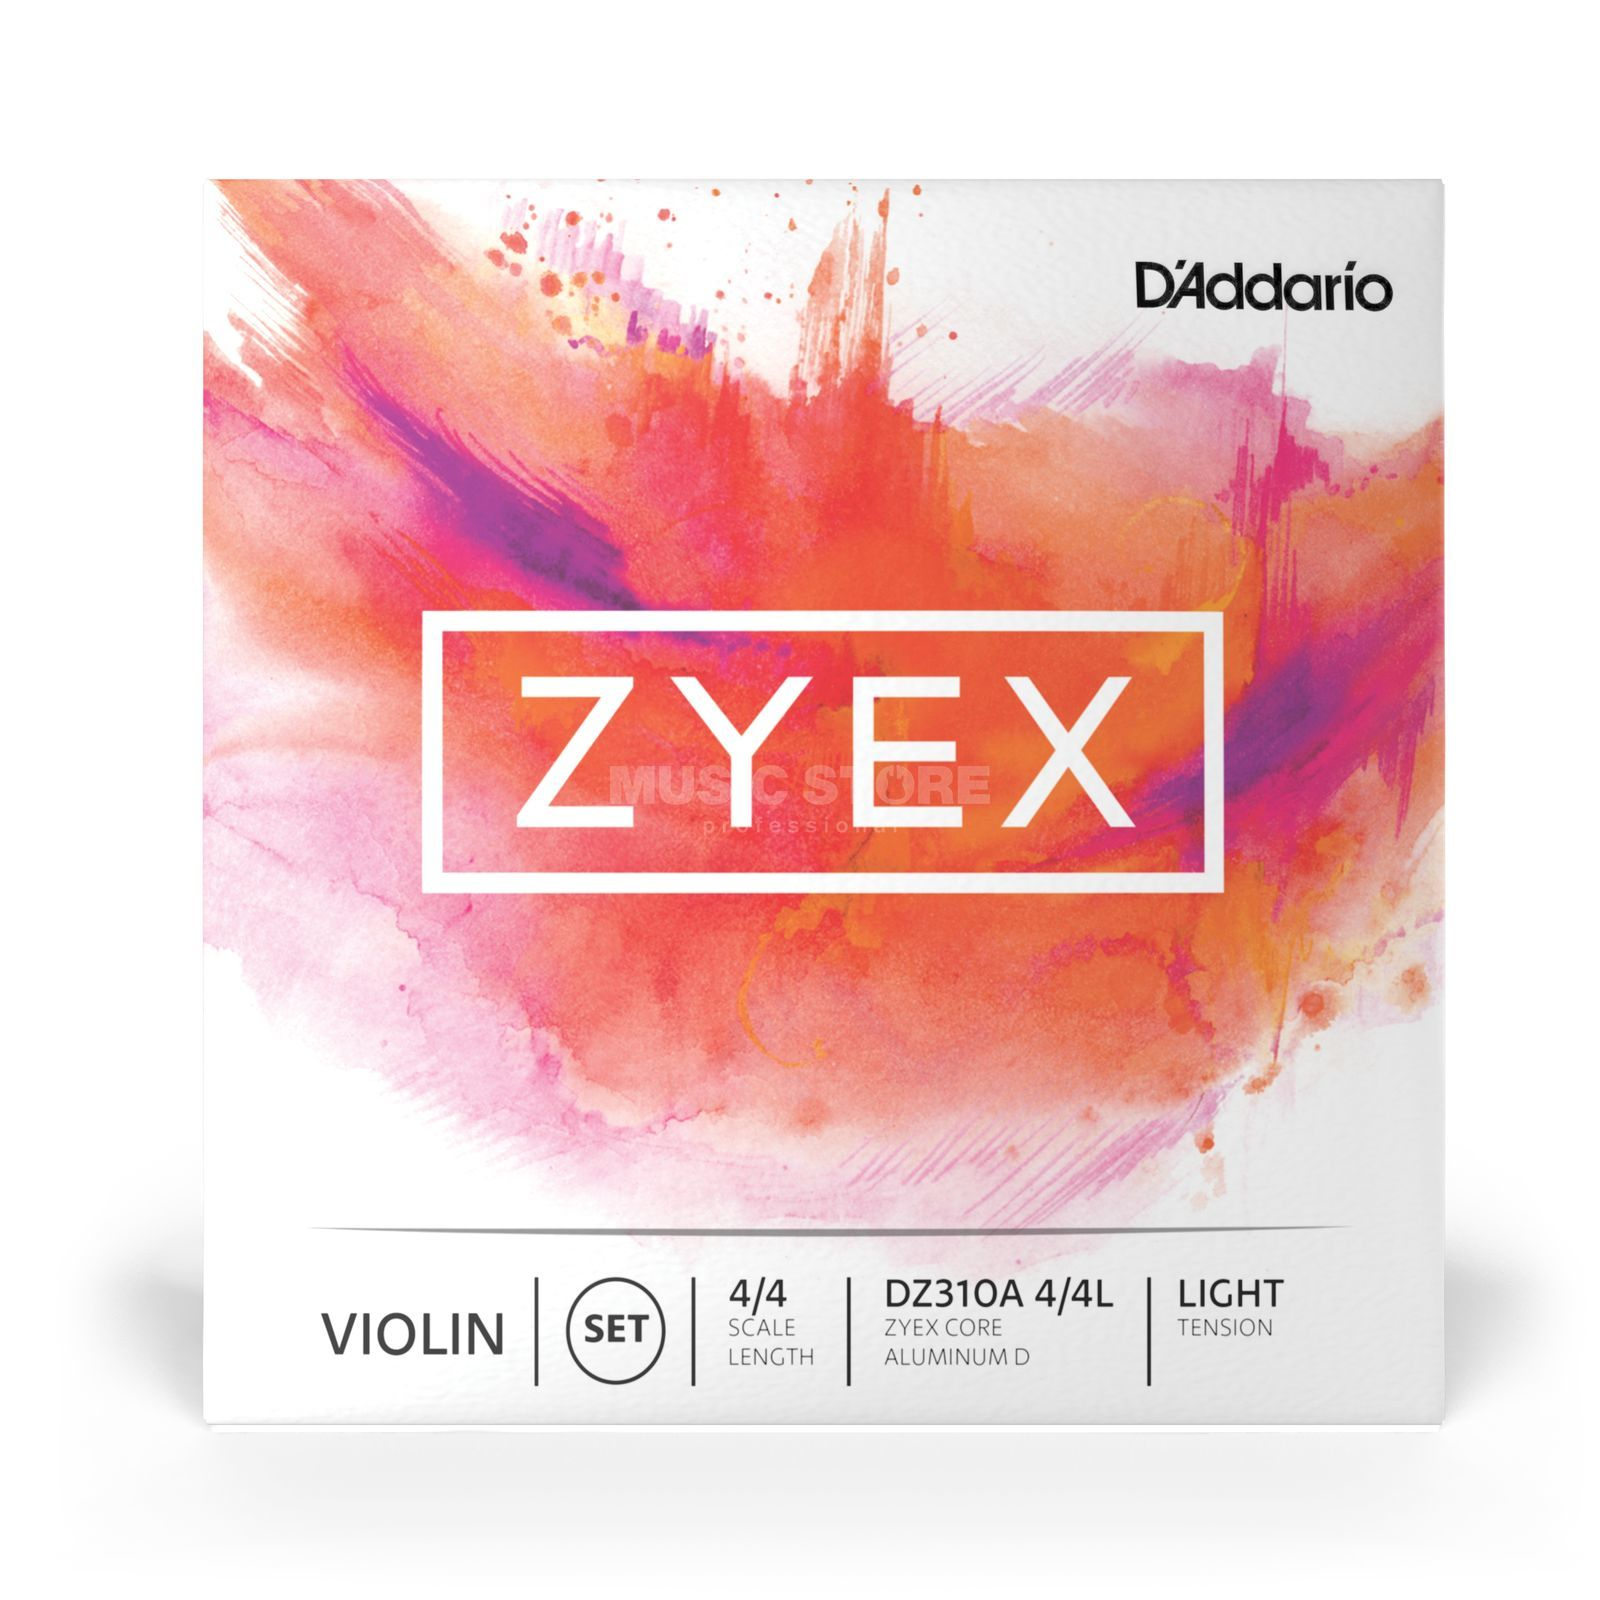 D'Addario Orchestral Violin String Zyex DZ310A-4/4L Light Tension, Aluminium D Product Image